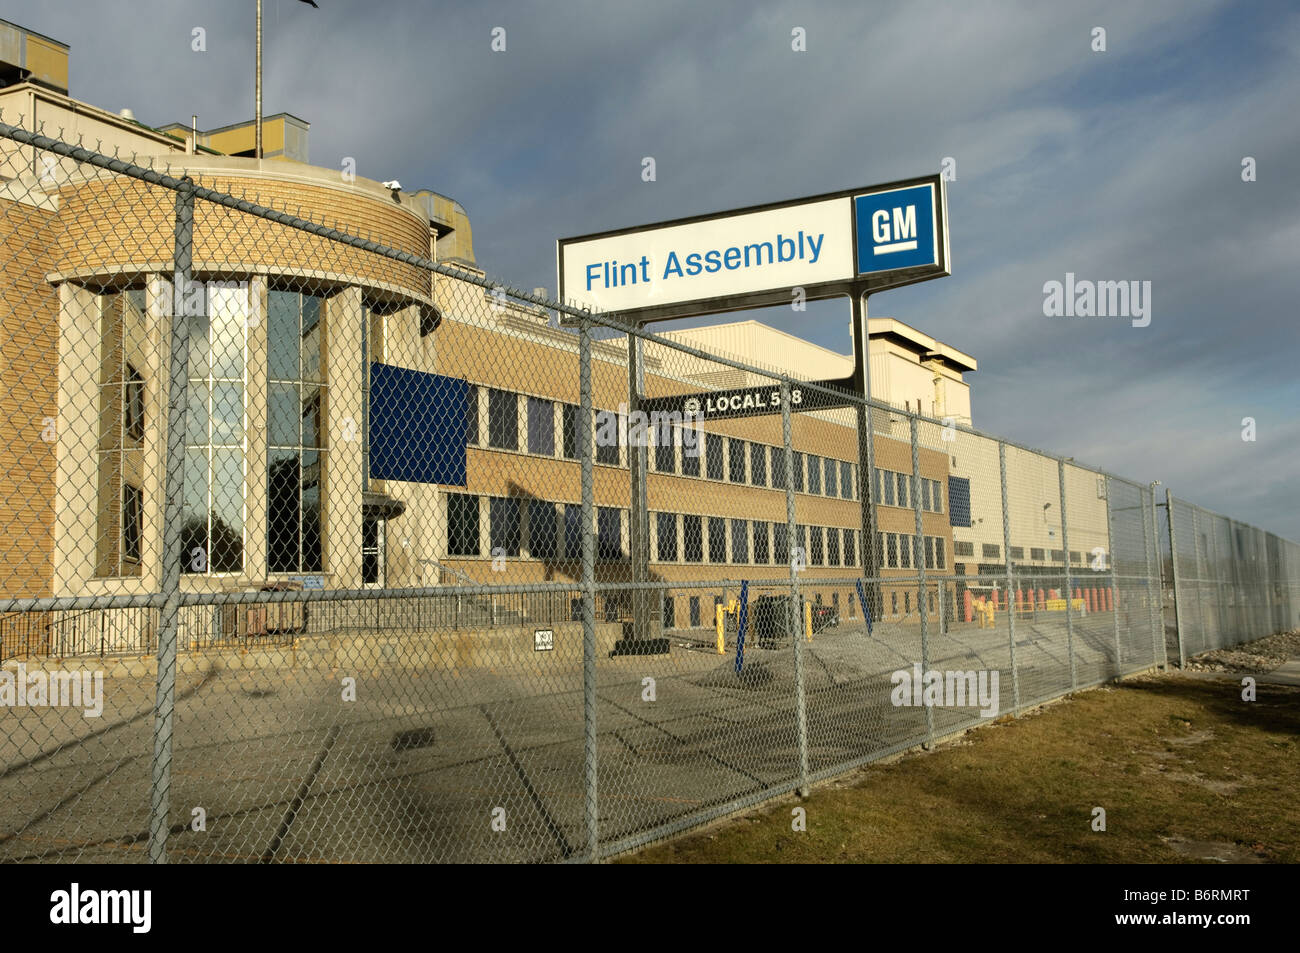 General Motors Flint Assembly factory building and sign in Flint Michigan USA. - Stock Image